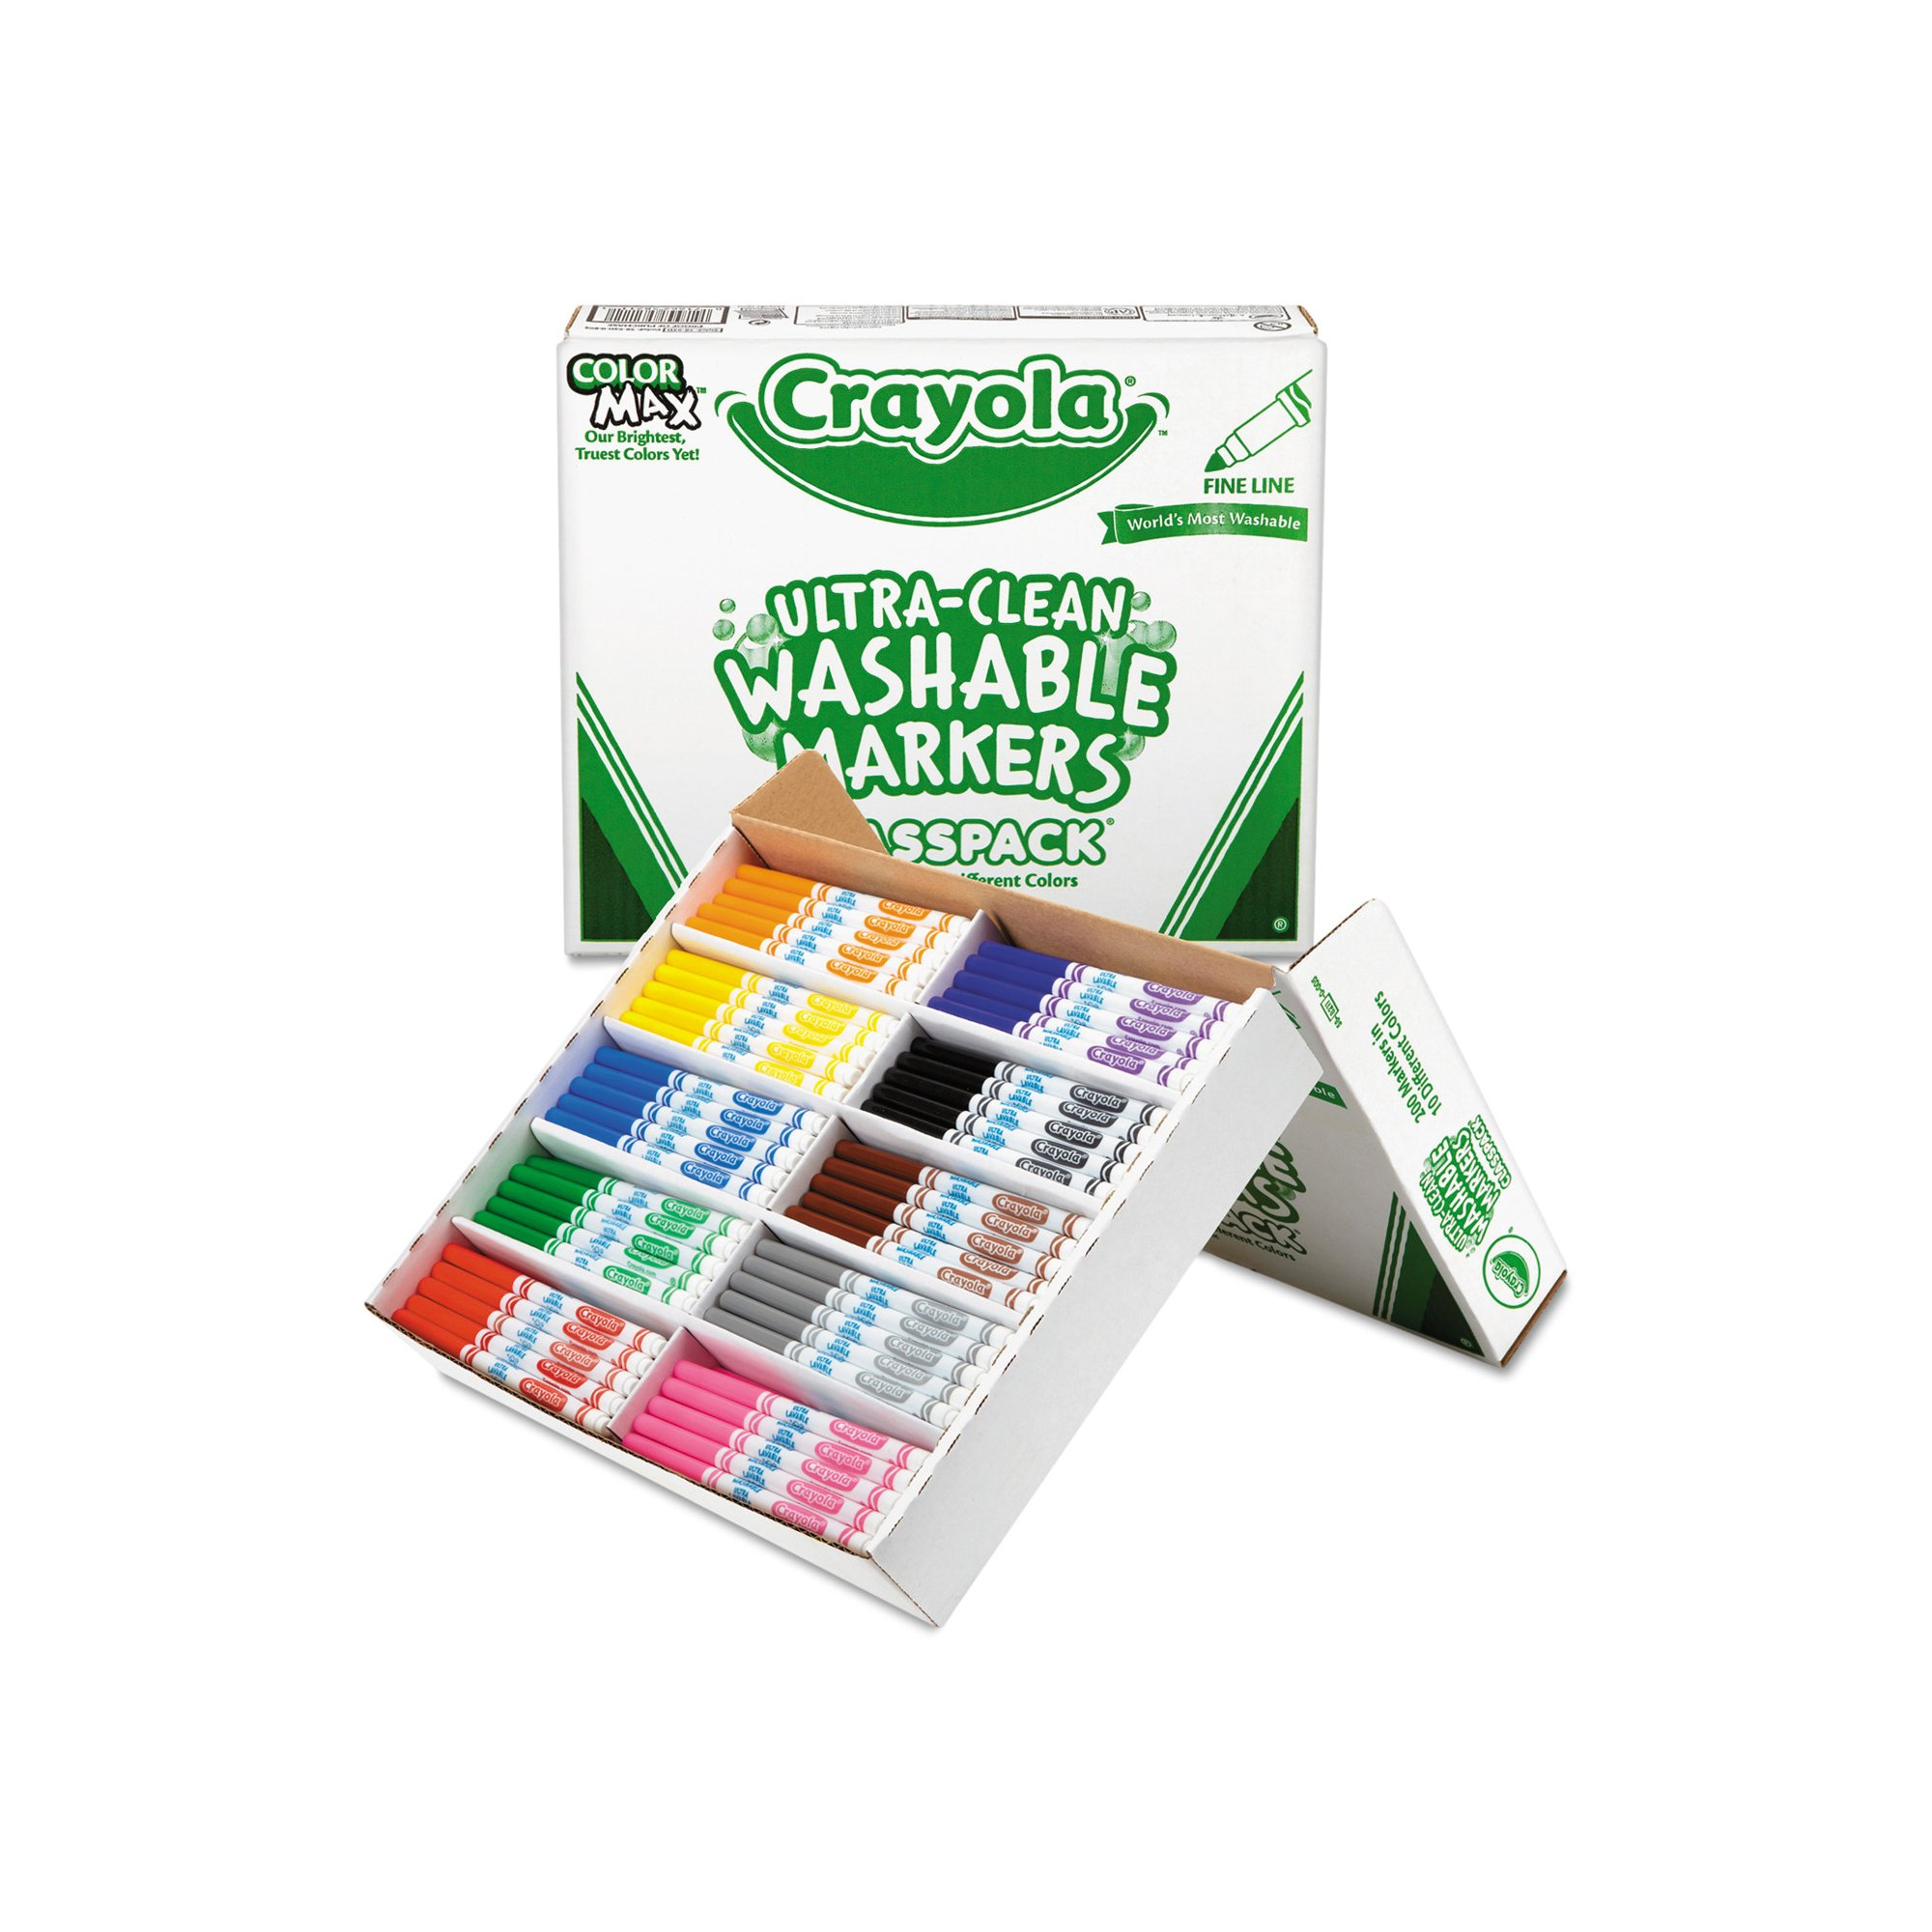 Crayola Washable Classpack Markers, Broad Point, Assorted, 200 Count